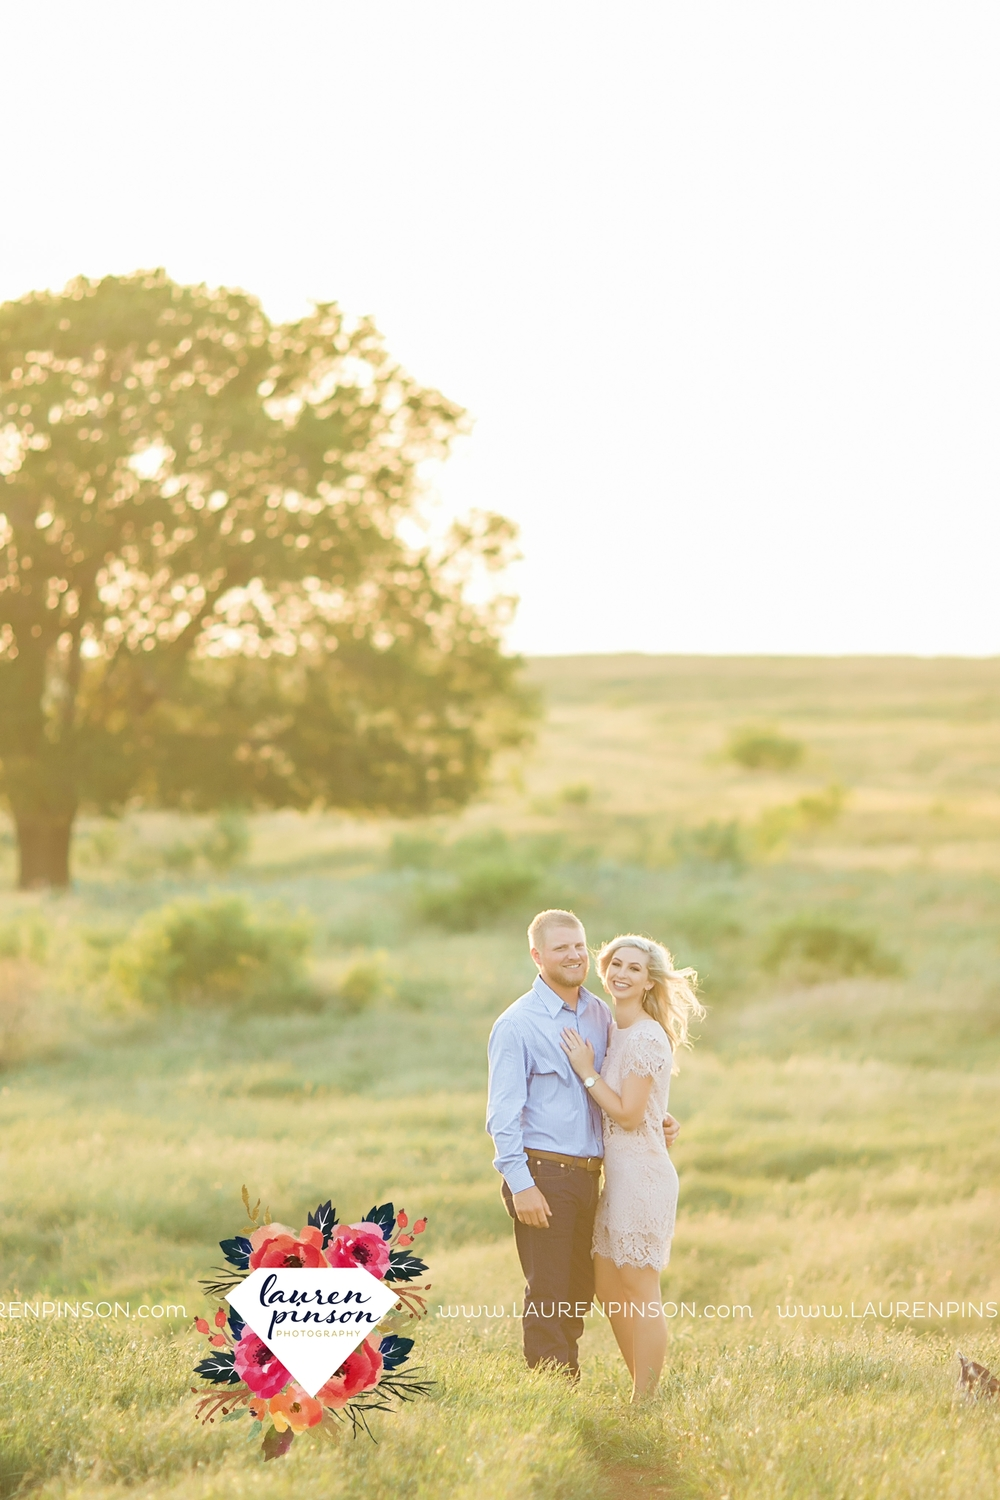 wichita-falls-texas-wedding-photographer-scotland-texas-engagement-session-country-barn-field-windthorst_2756.jpg